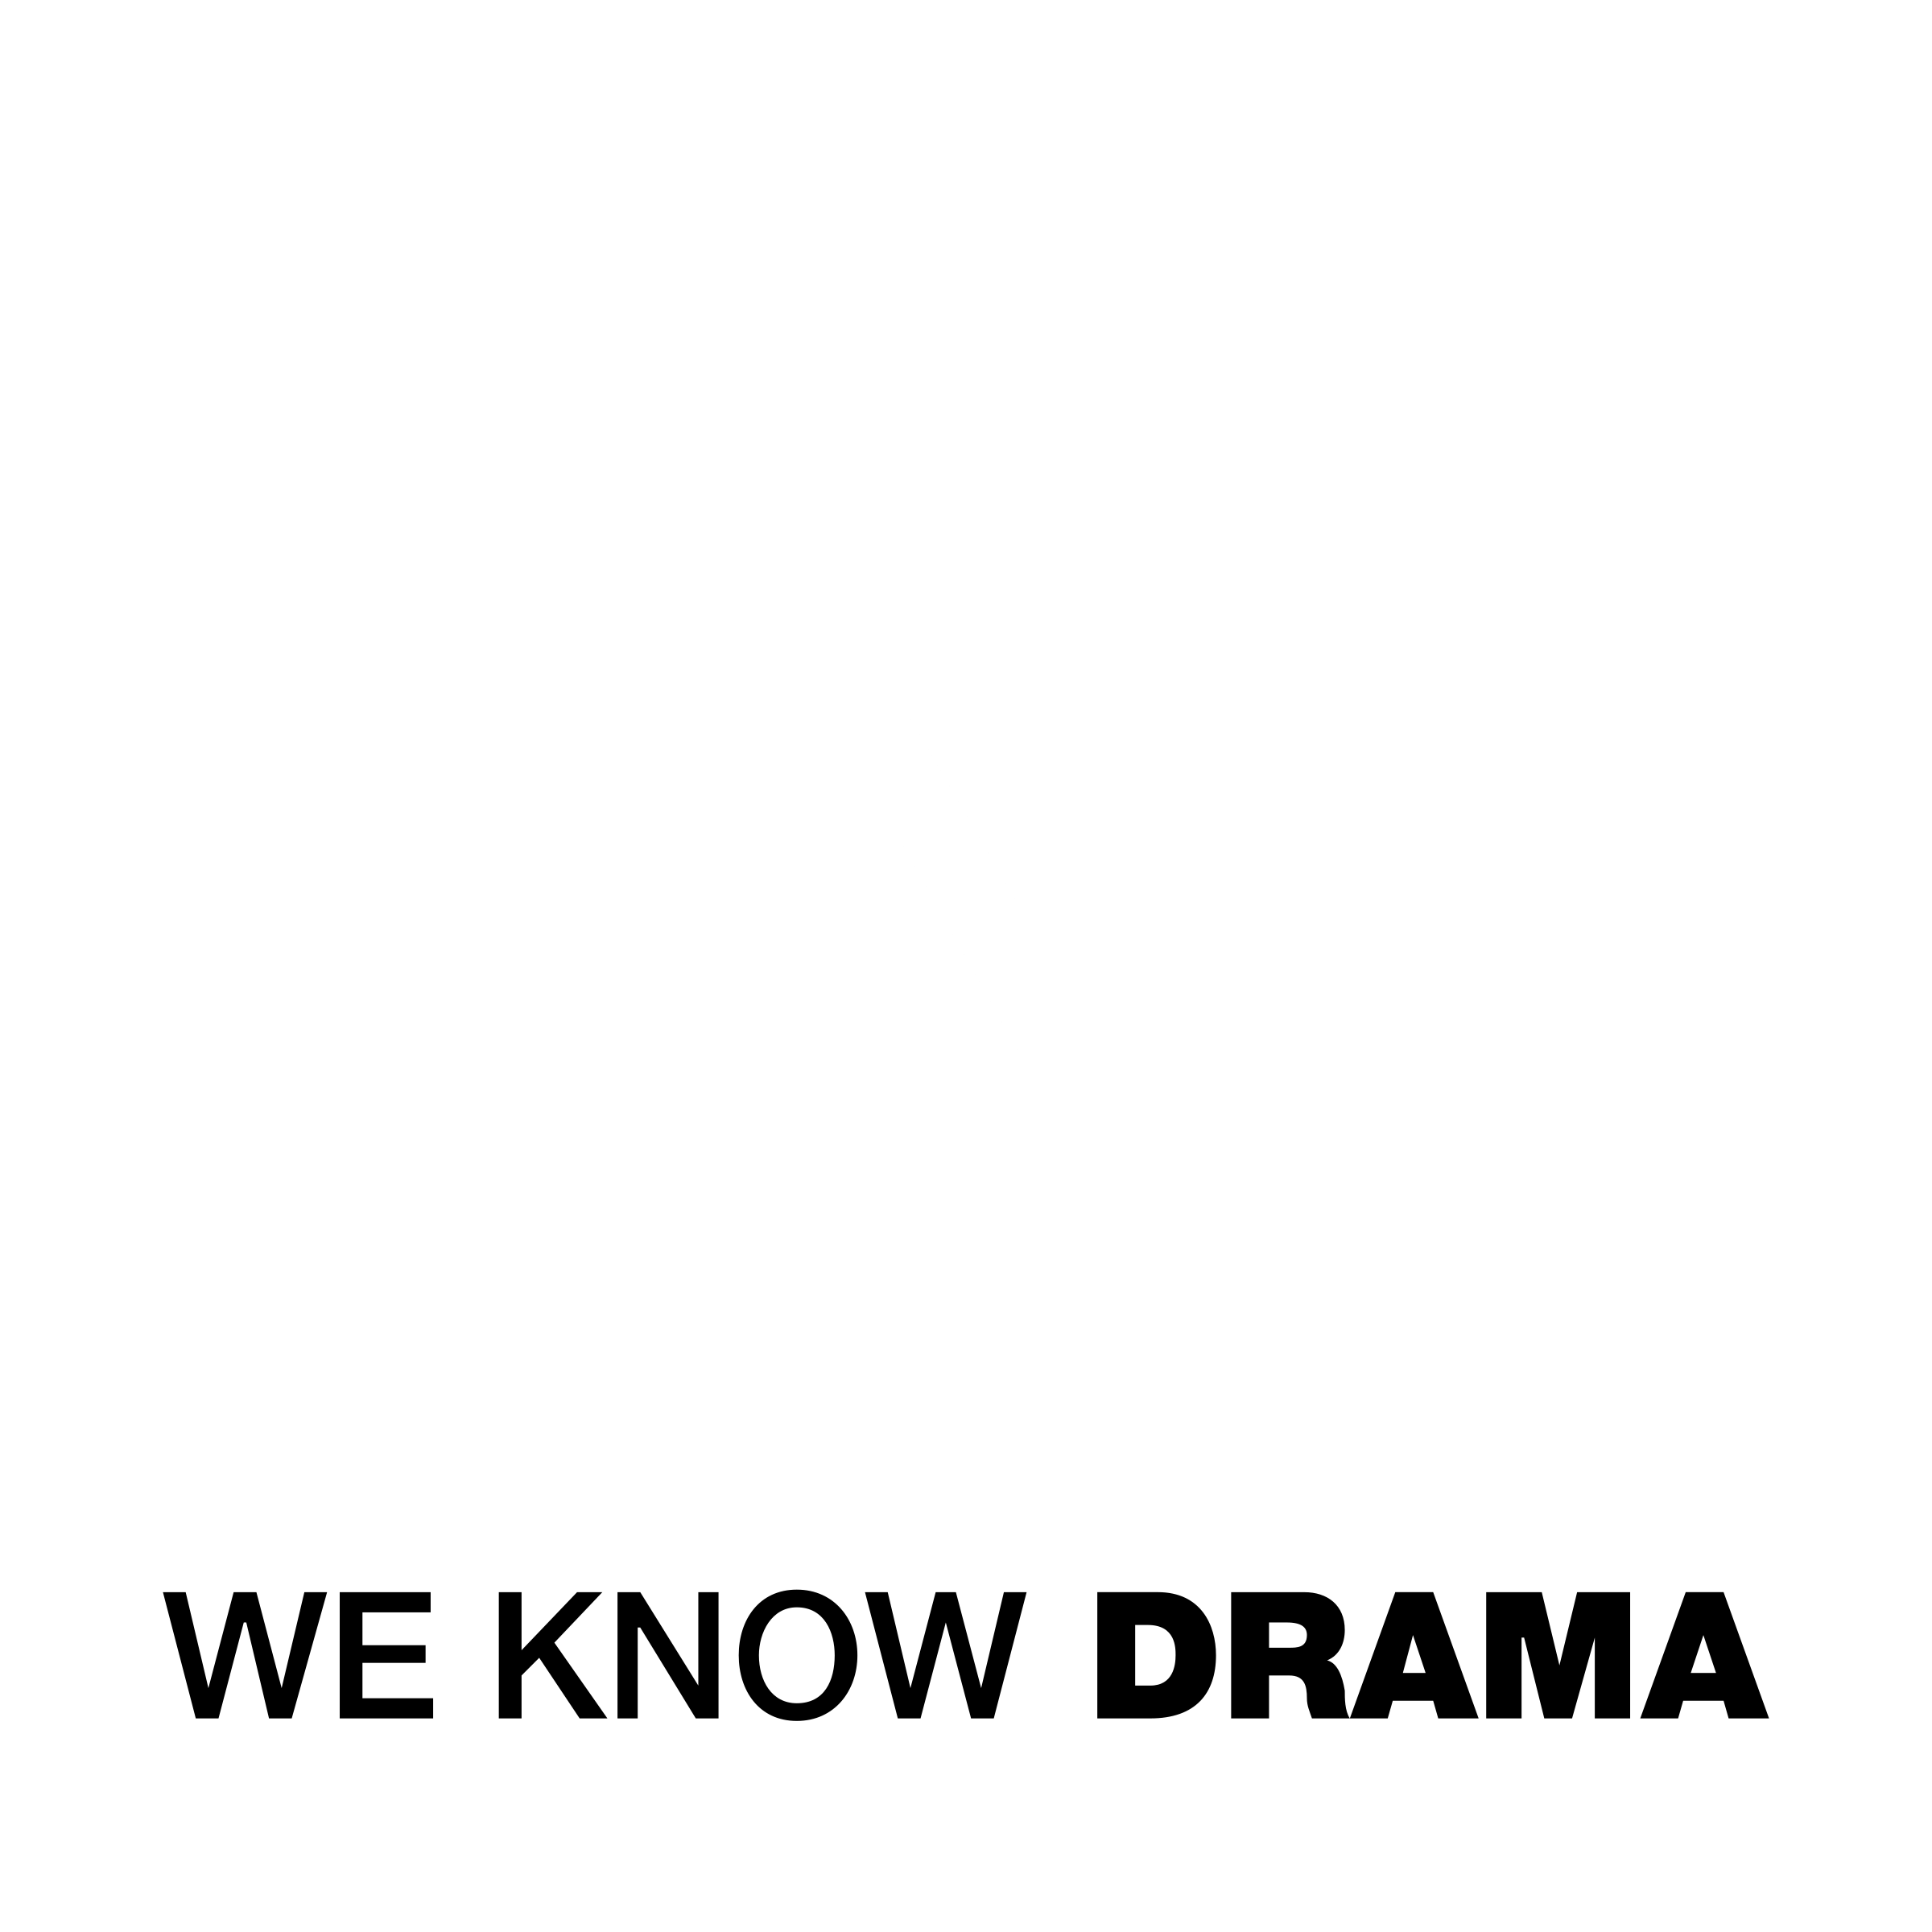 Tnt Logo Png Transparent Svg Vector Freebie Supply